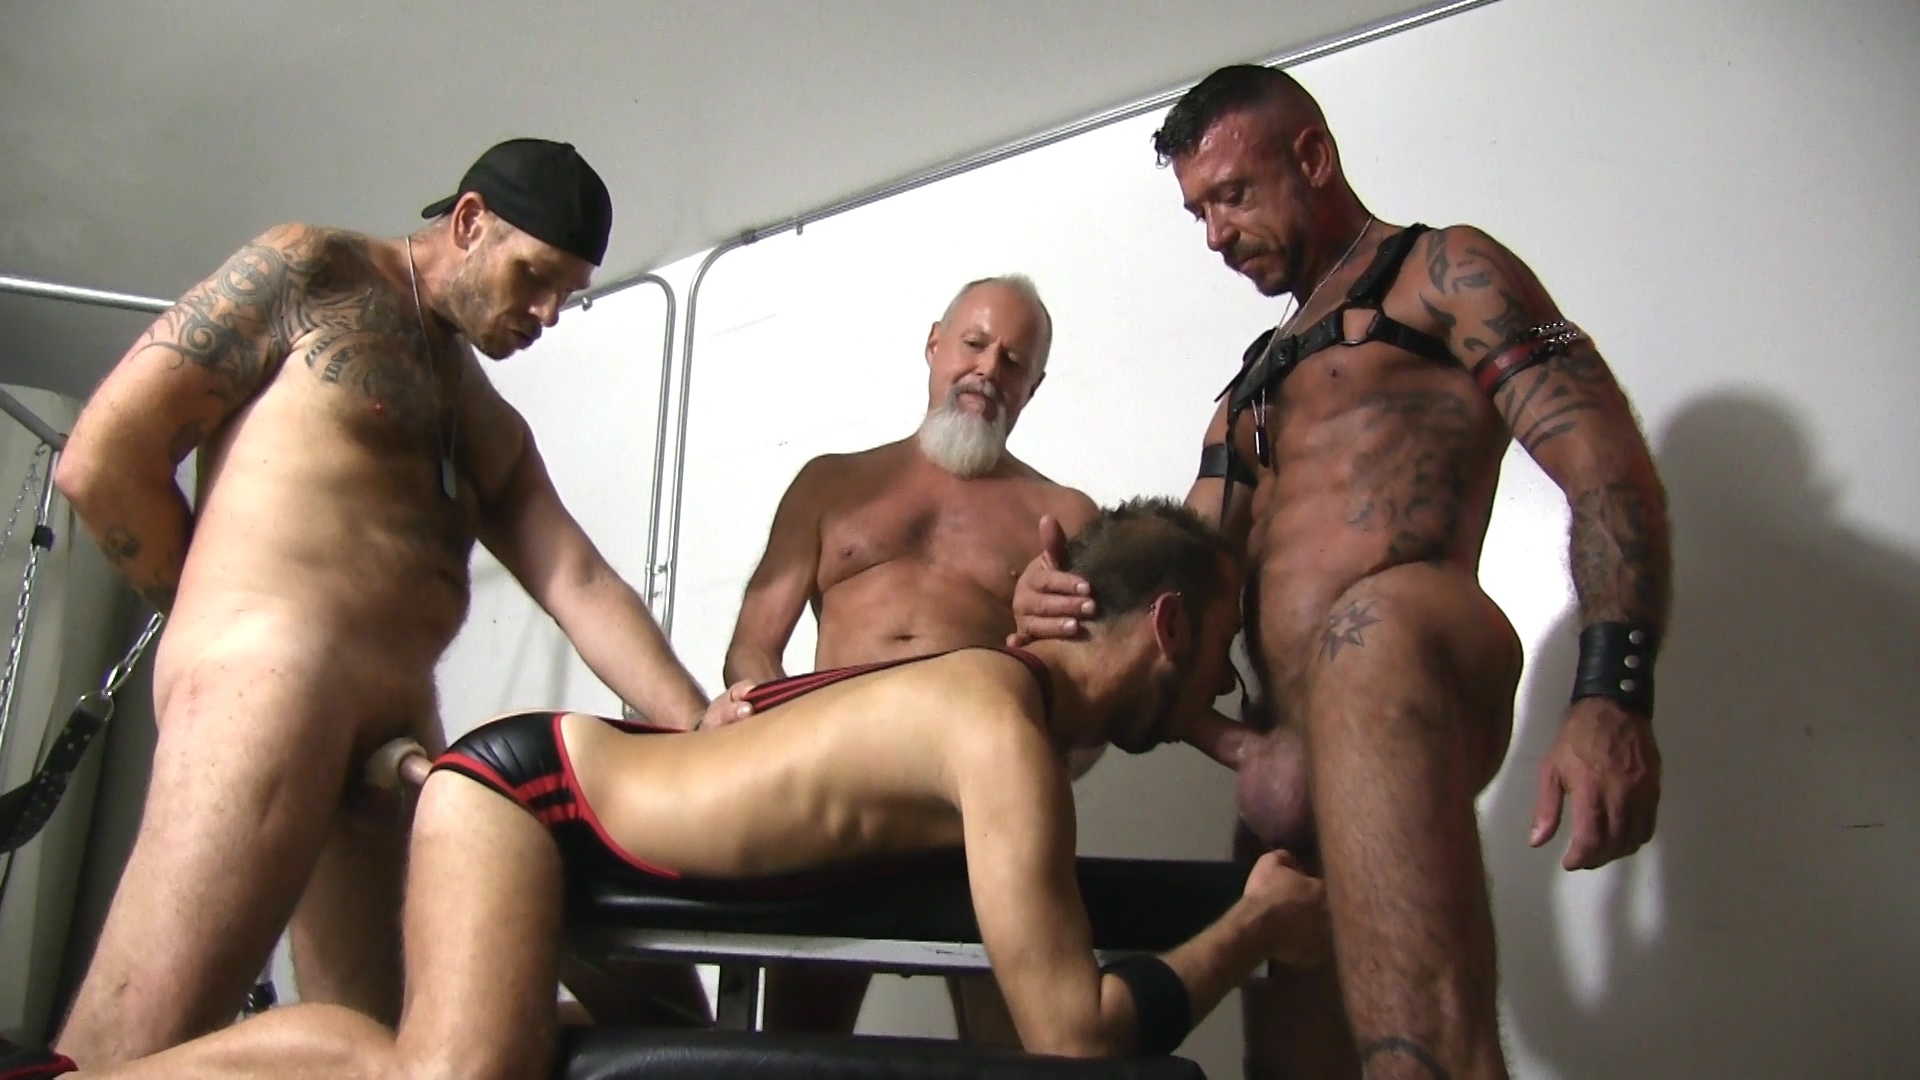 Daddy Gay Video Free